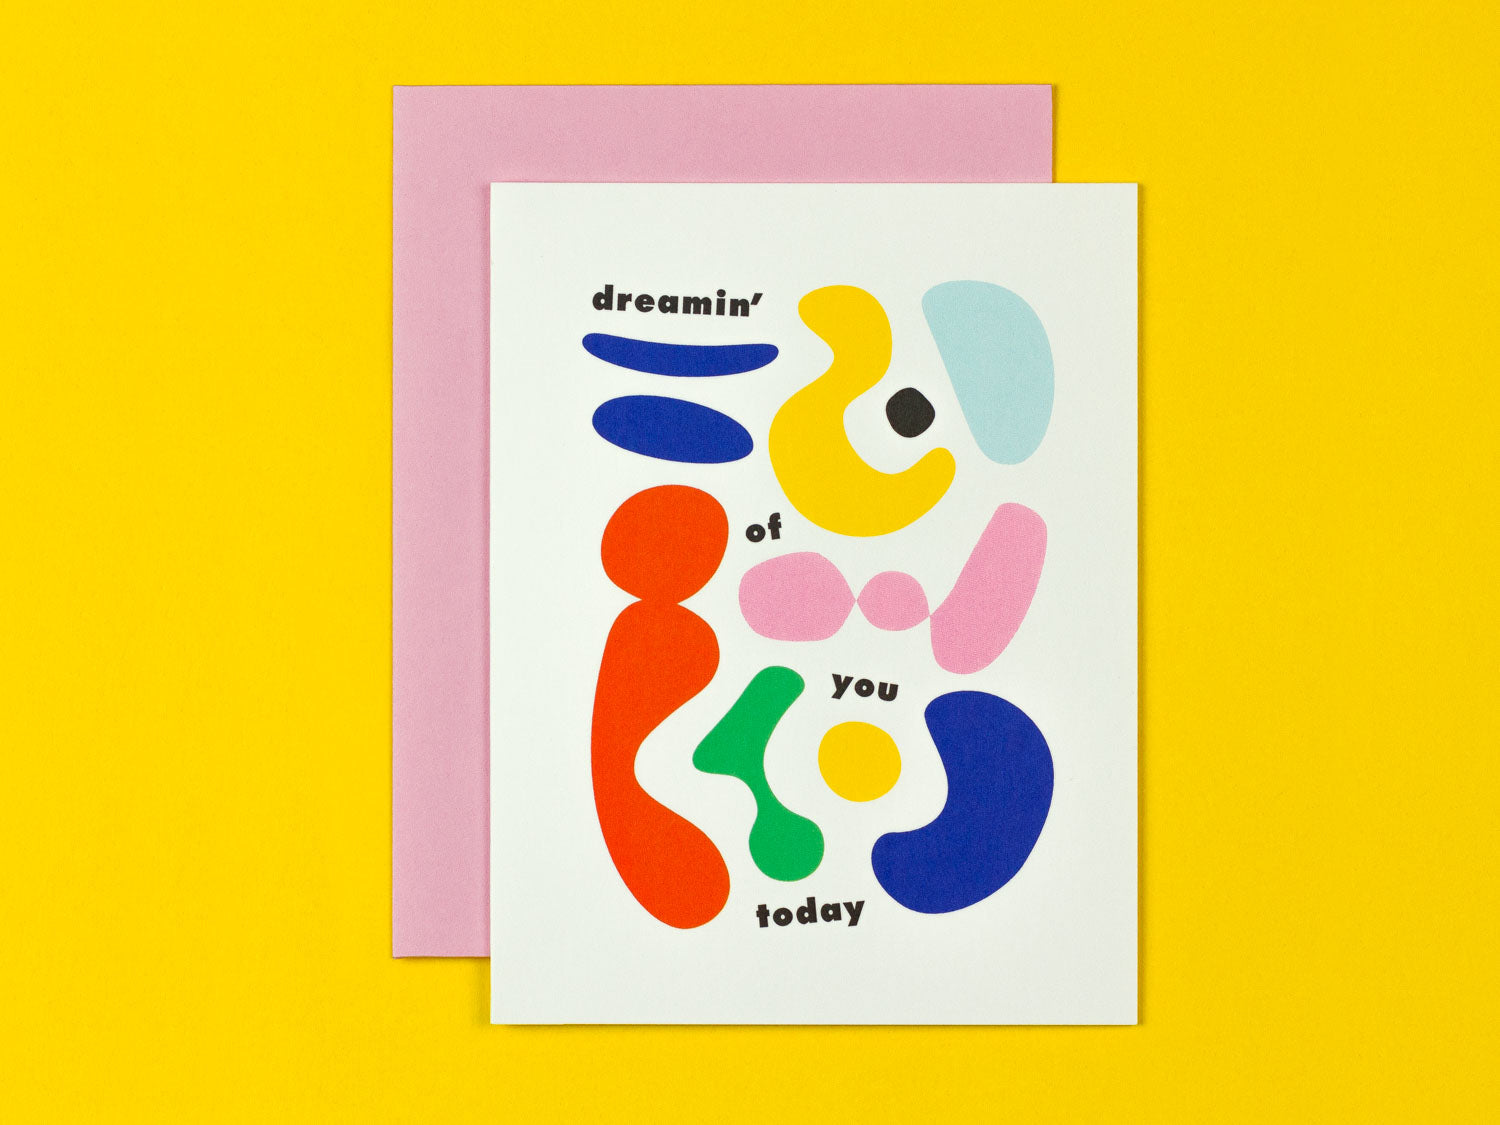 Dreamin' of You Today love card with colorful abstract shapes by @mydarlin_bk